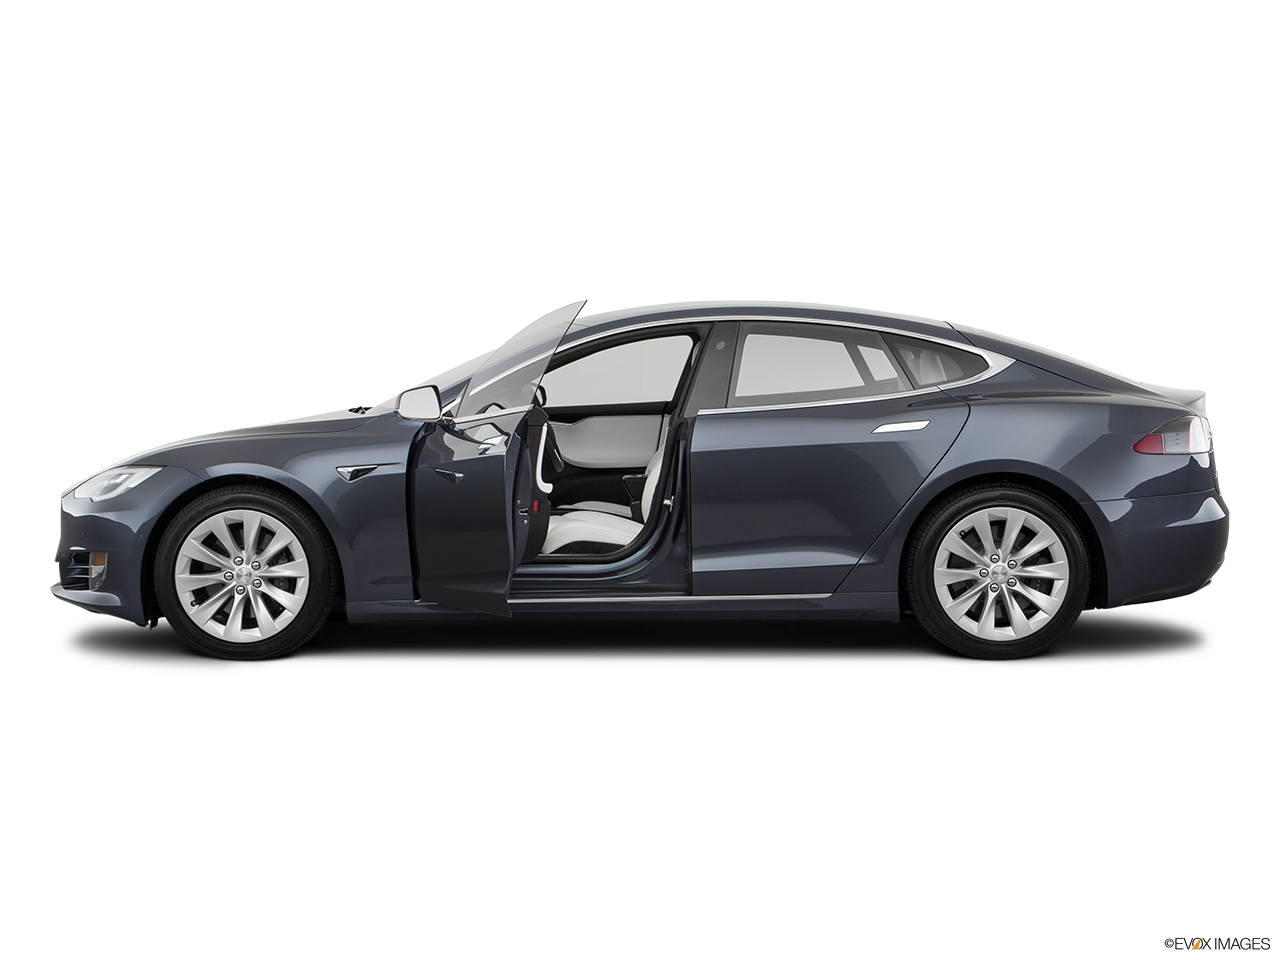 Side view of the Tesla Model S